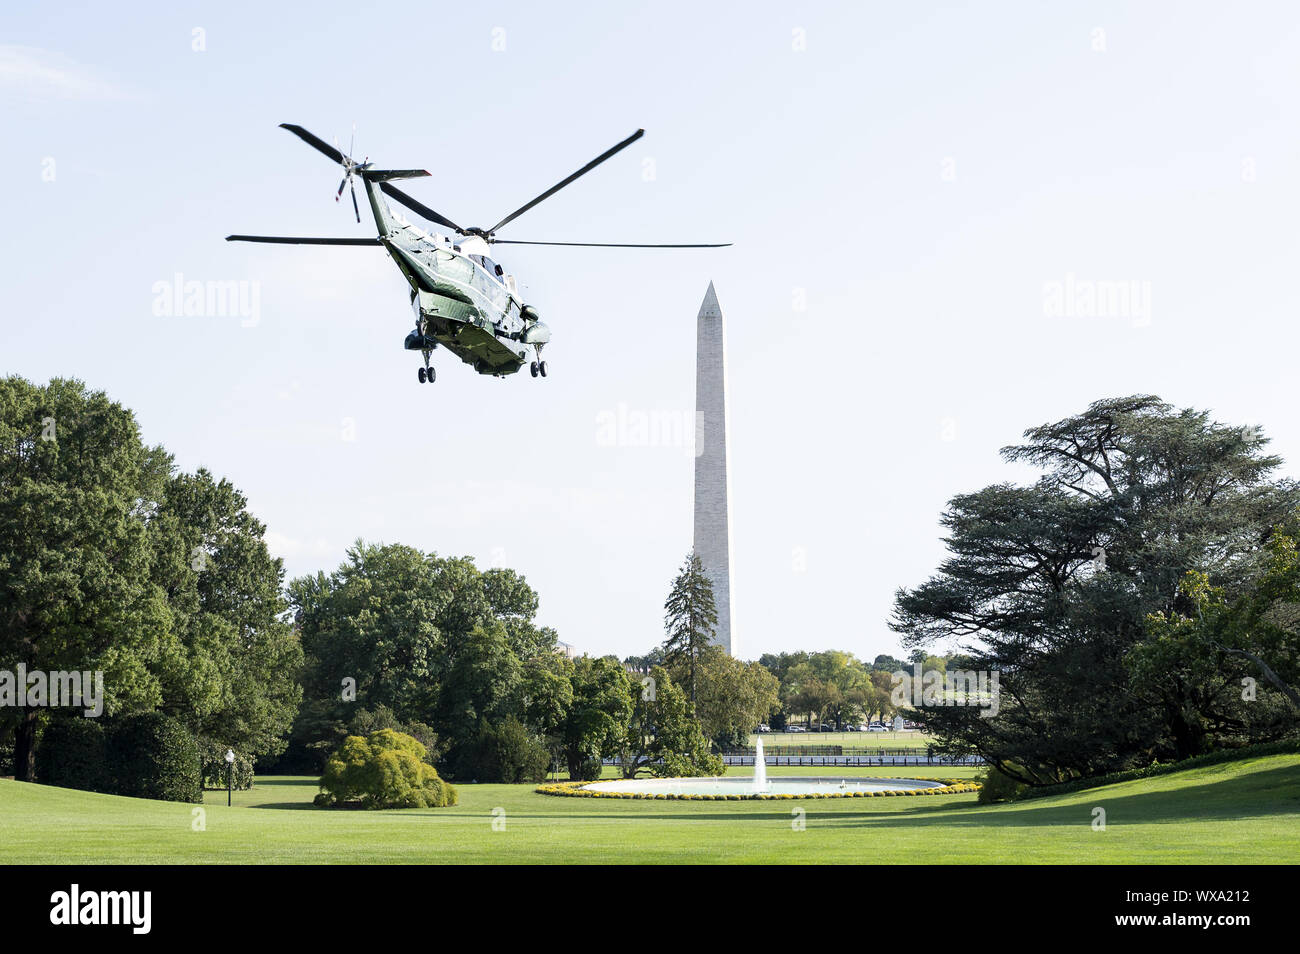 Washington, DC, USA. 16th Sep, 2019. September 16, 2019 - Washington, DC, United States: President Donald Trump leaving on the Marine One helicopter to start his journey to attend a ''Keep America Great Rally'' in Albuquerque, New Mexico. Credit: Michael Brochstein/ZUMA Wire/Alamy Live News Stock Photo